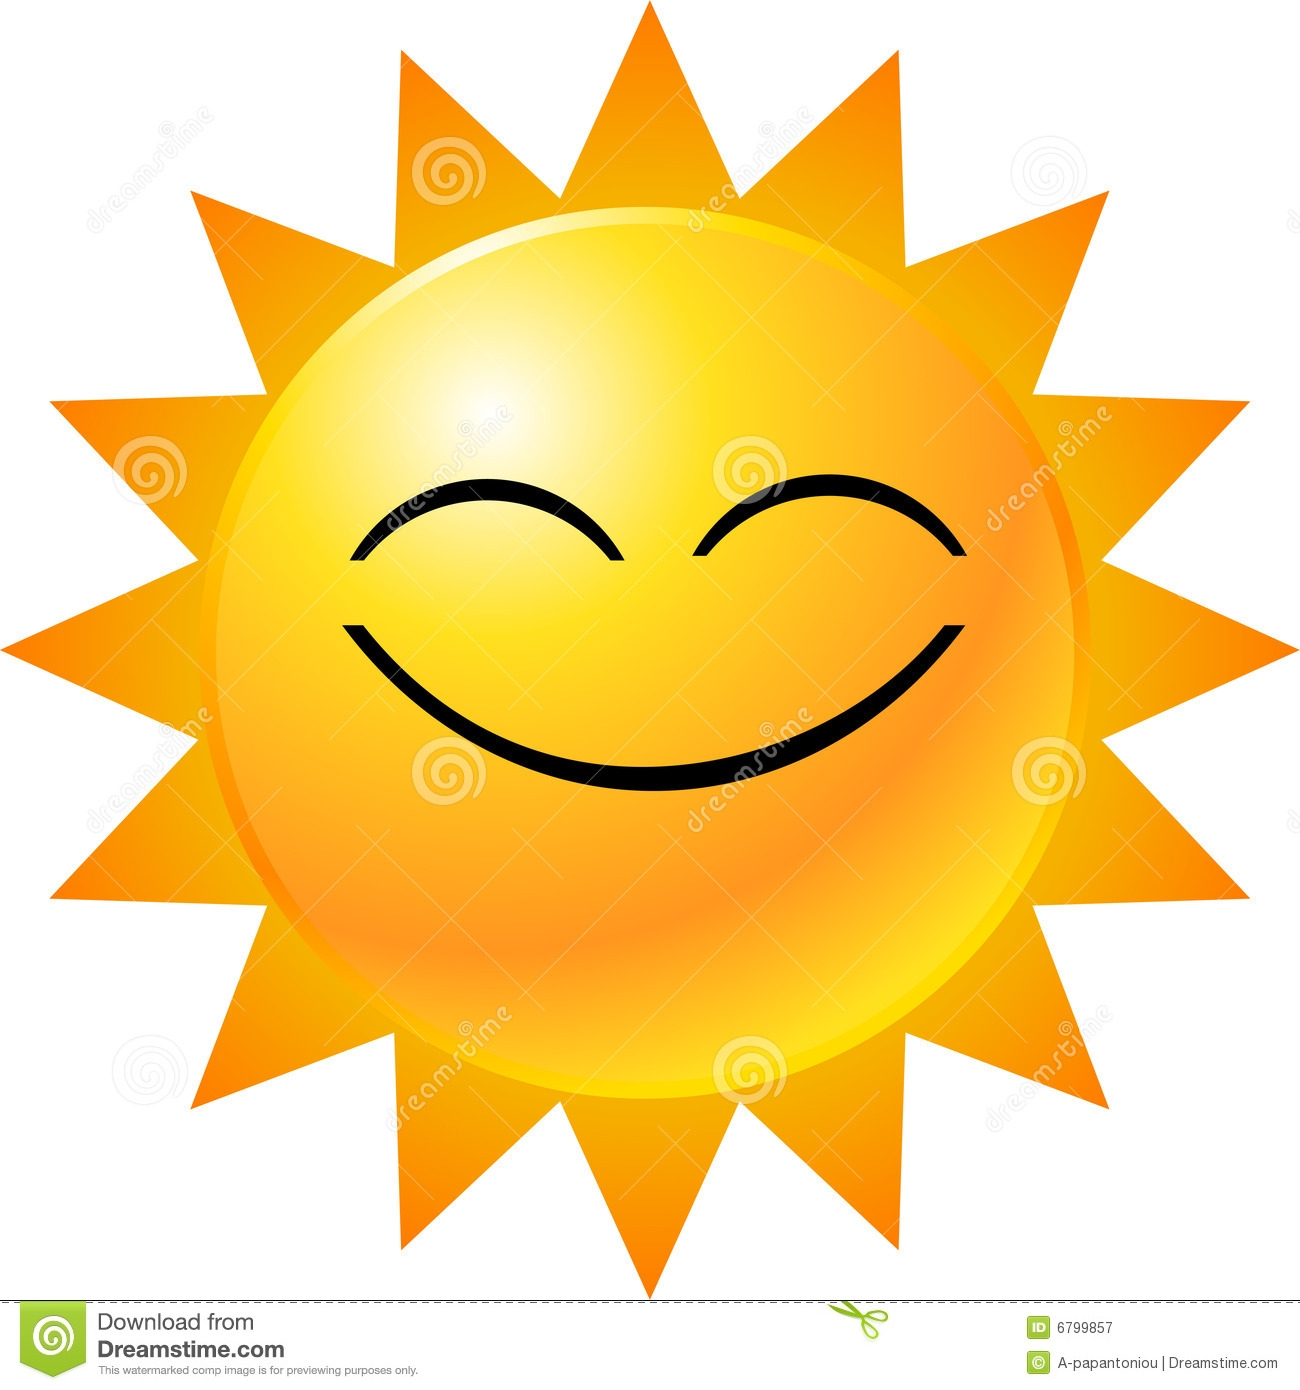 New gallery digital collection. Sunny clipart